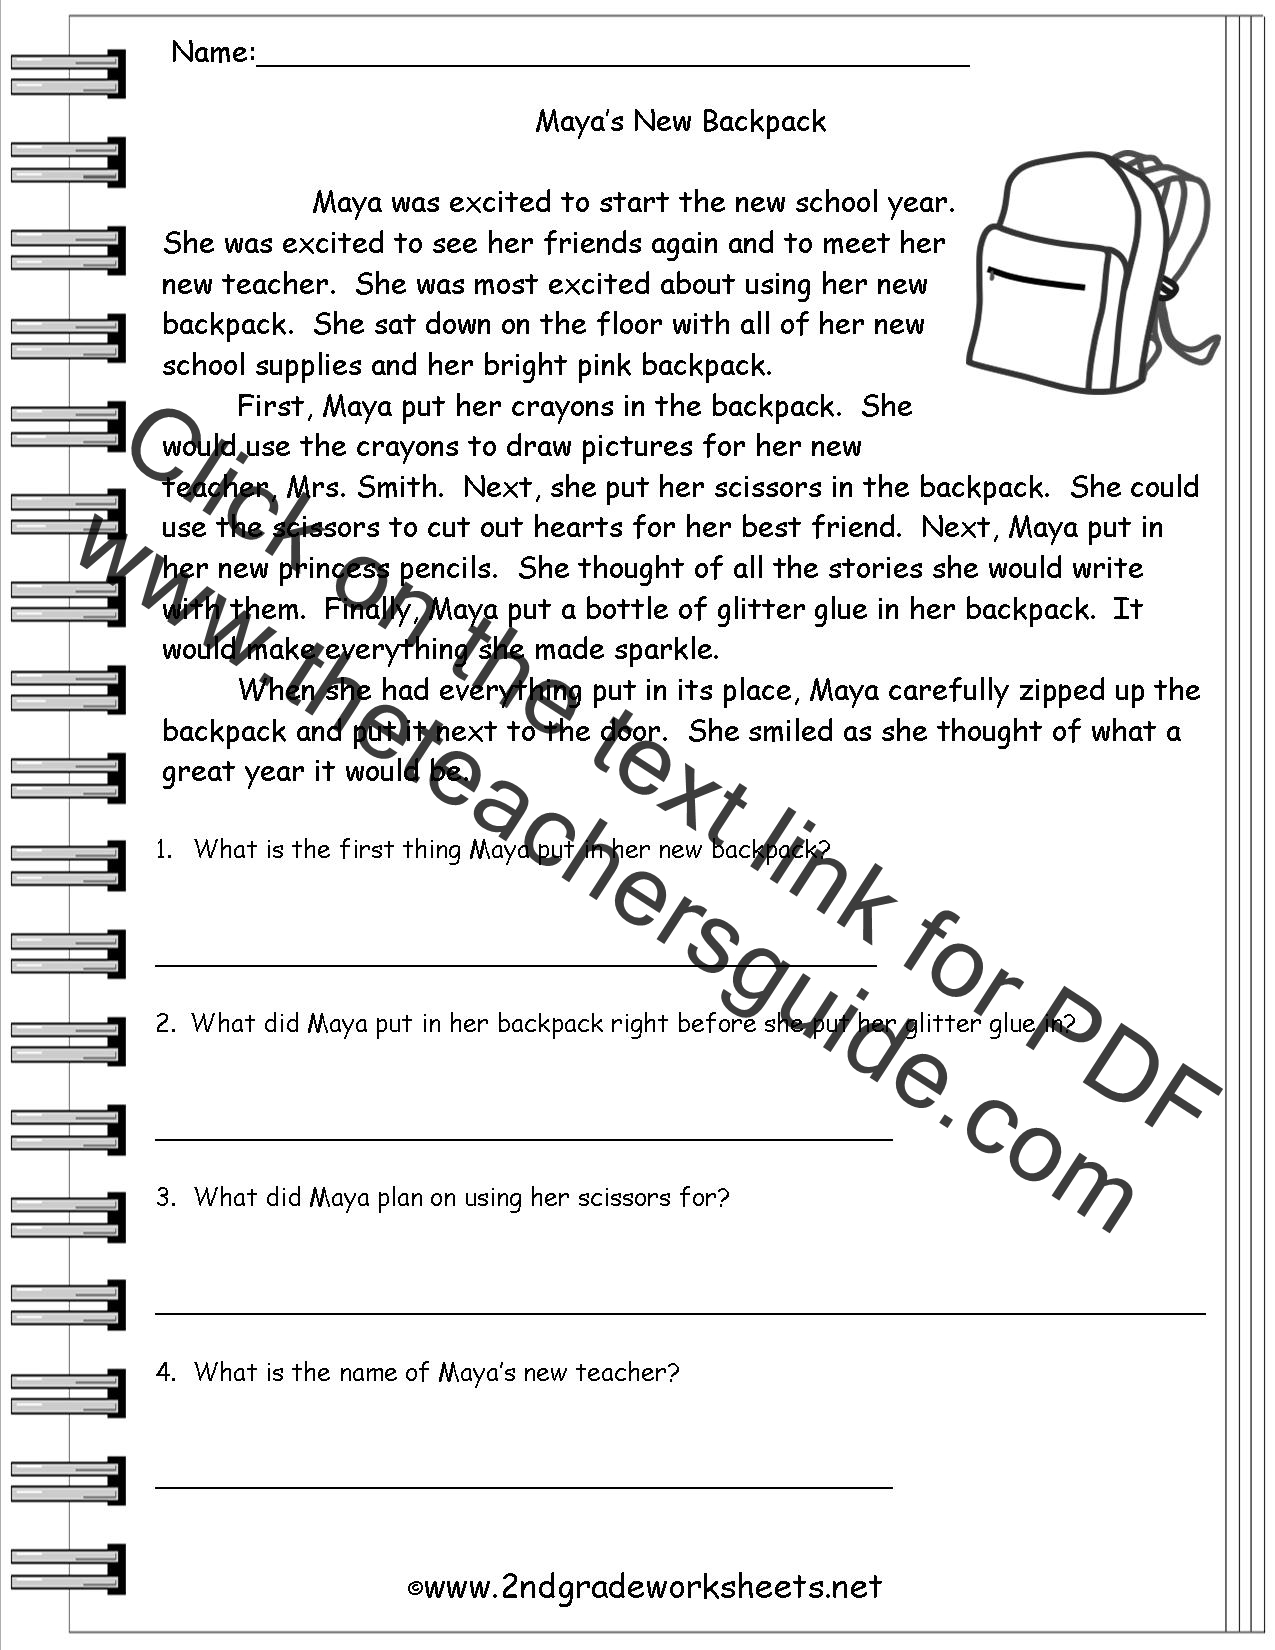 Worksheet Reading Comprehension Passages For 3rd Grade reading comprehension grade 3 download pdf printable worksheets 4